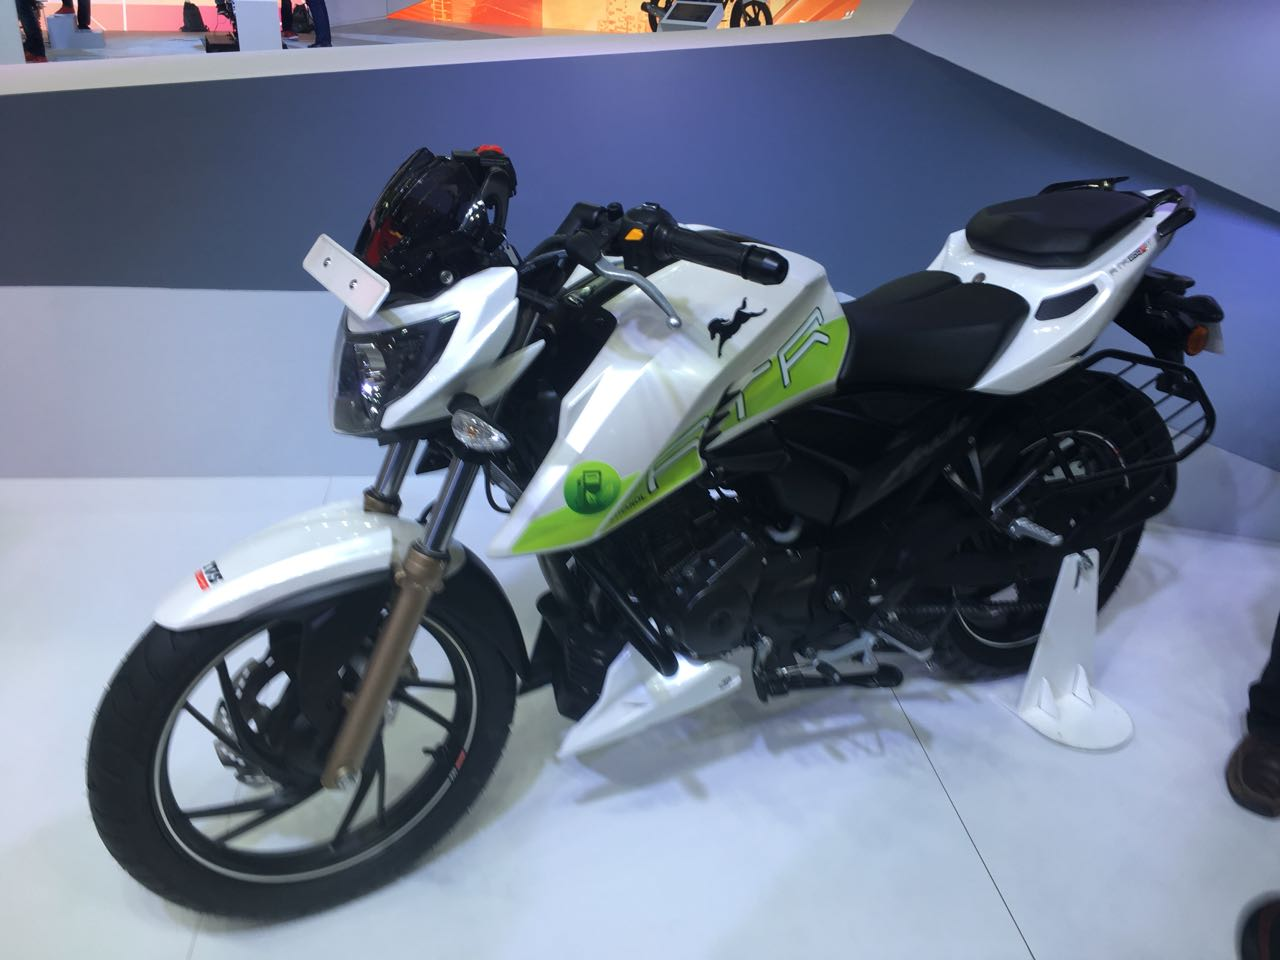 Auto Expo 2018: Hero XPulse 200 showcased